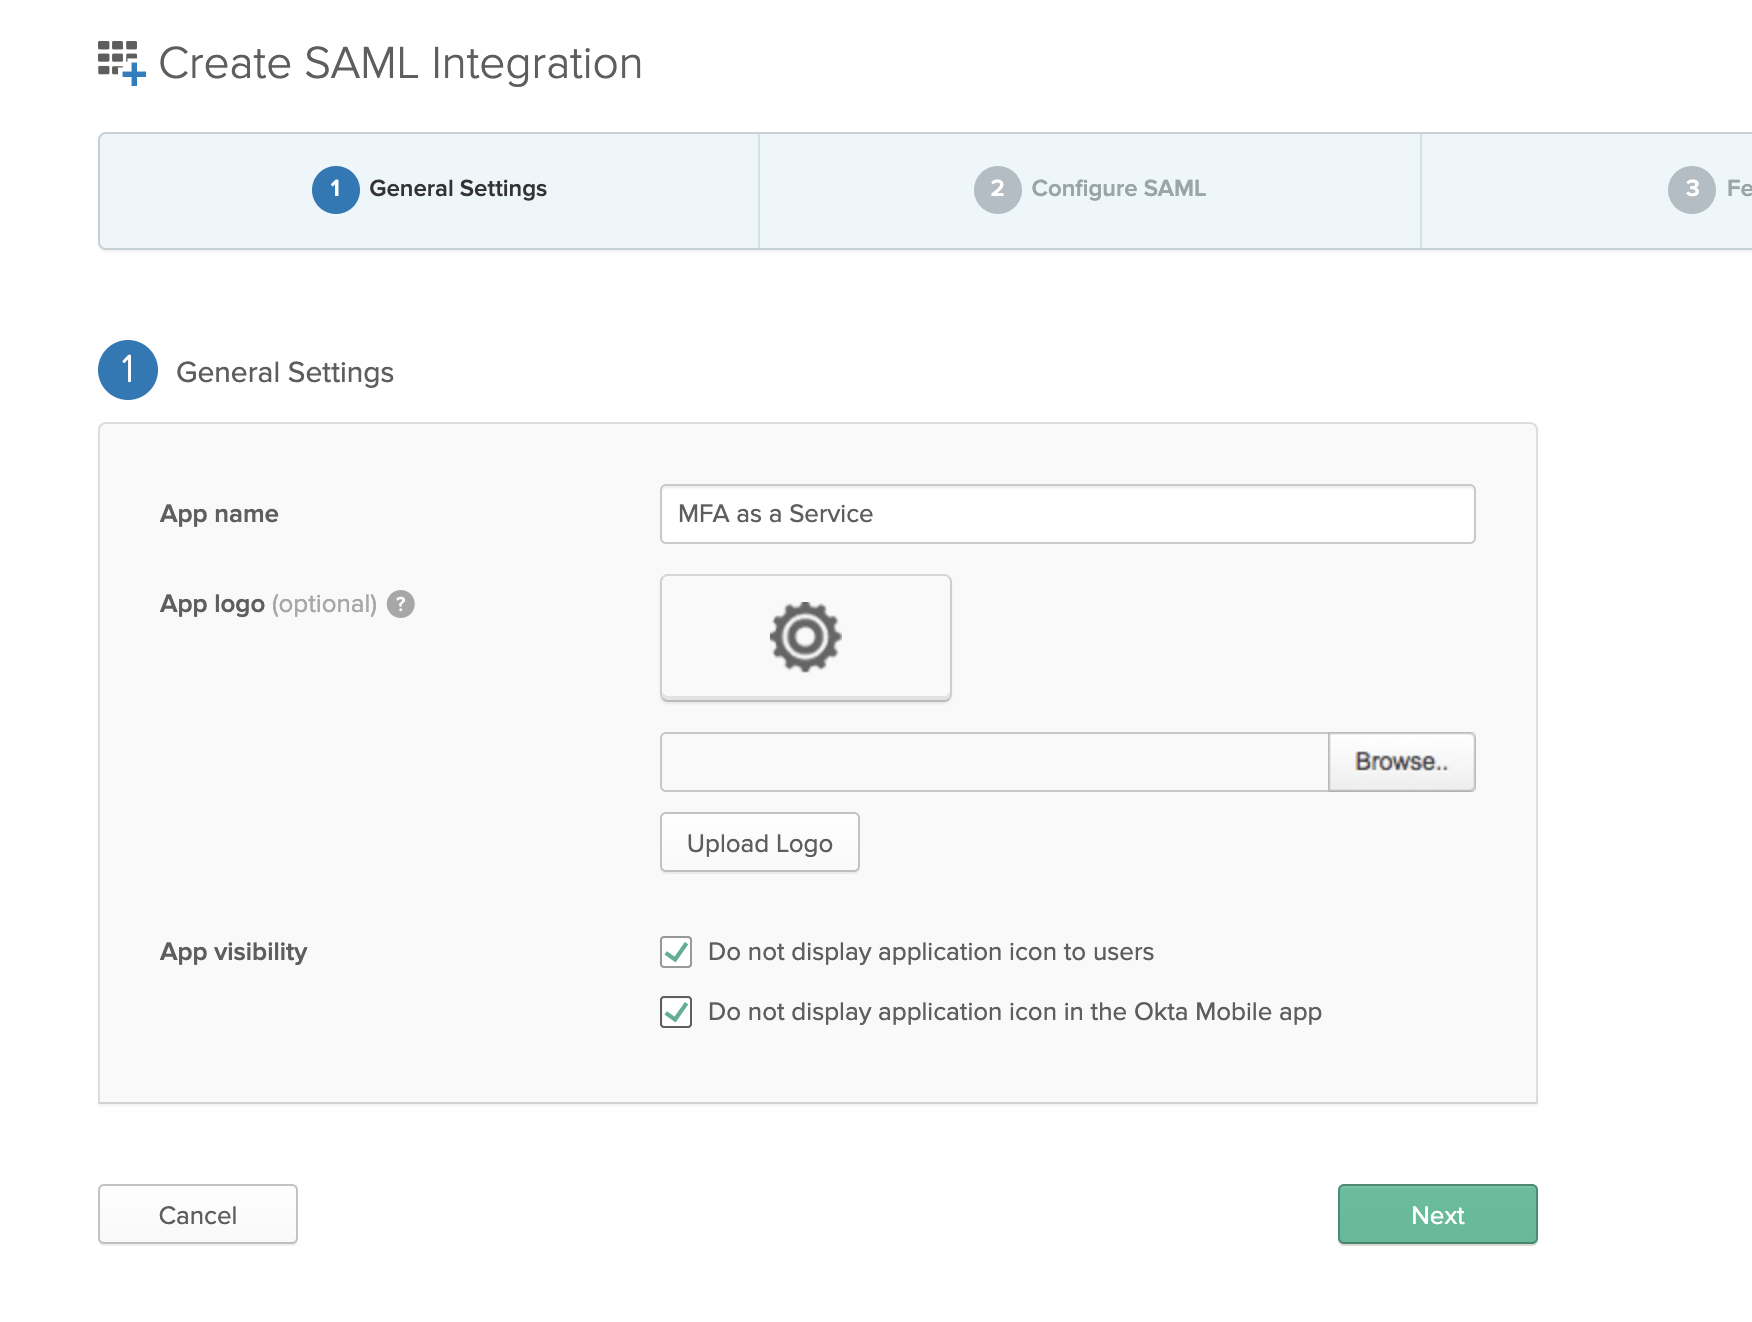 Create SAML Integration Step One